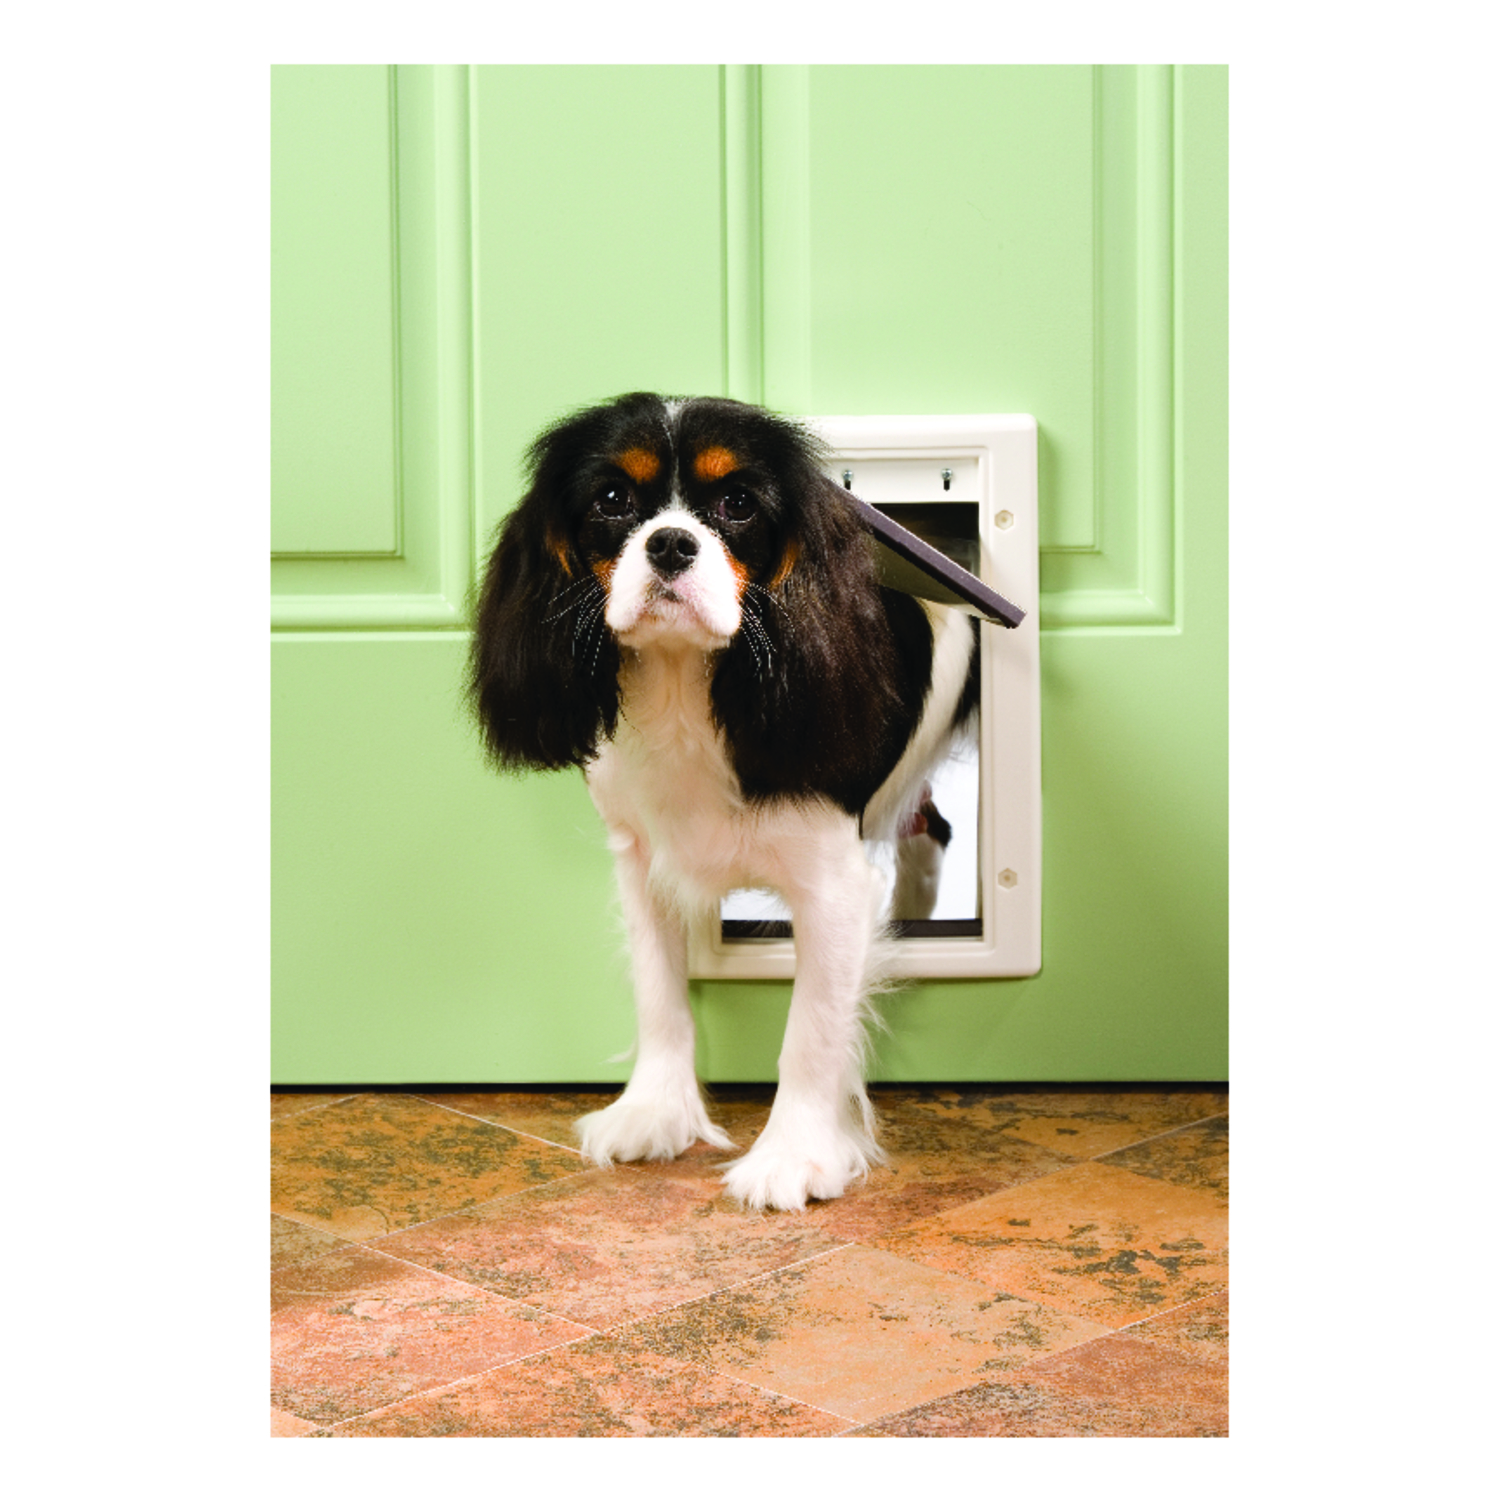 Petsafe Pet Door Small For Pets up to 15 lb. 5-1/8 in. x 7-5/8 in. White Plastic